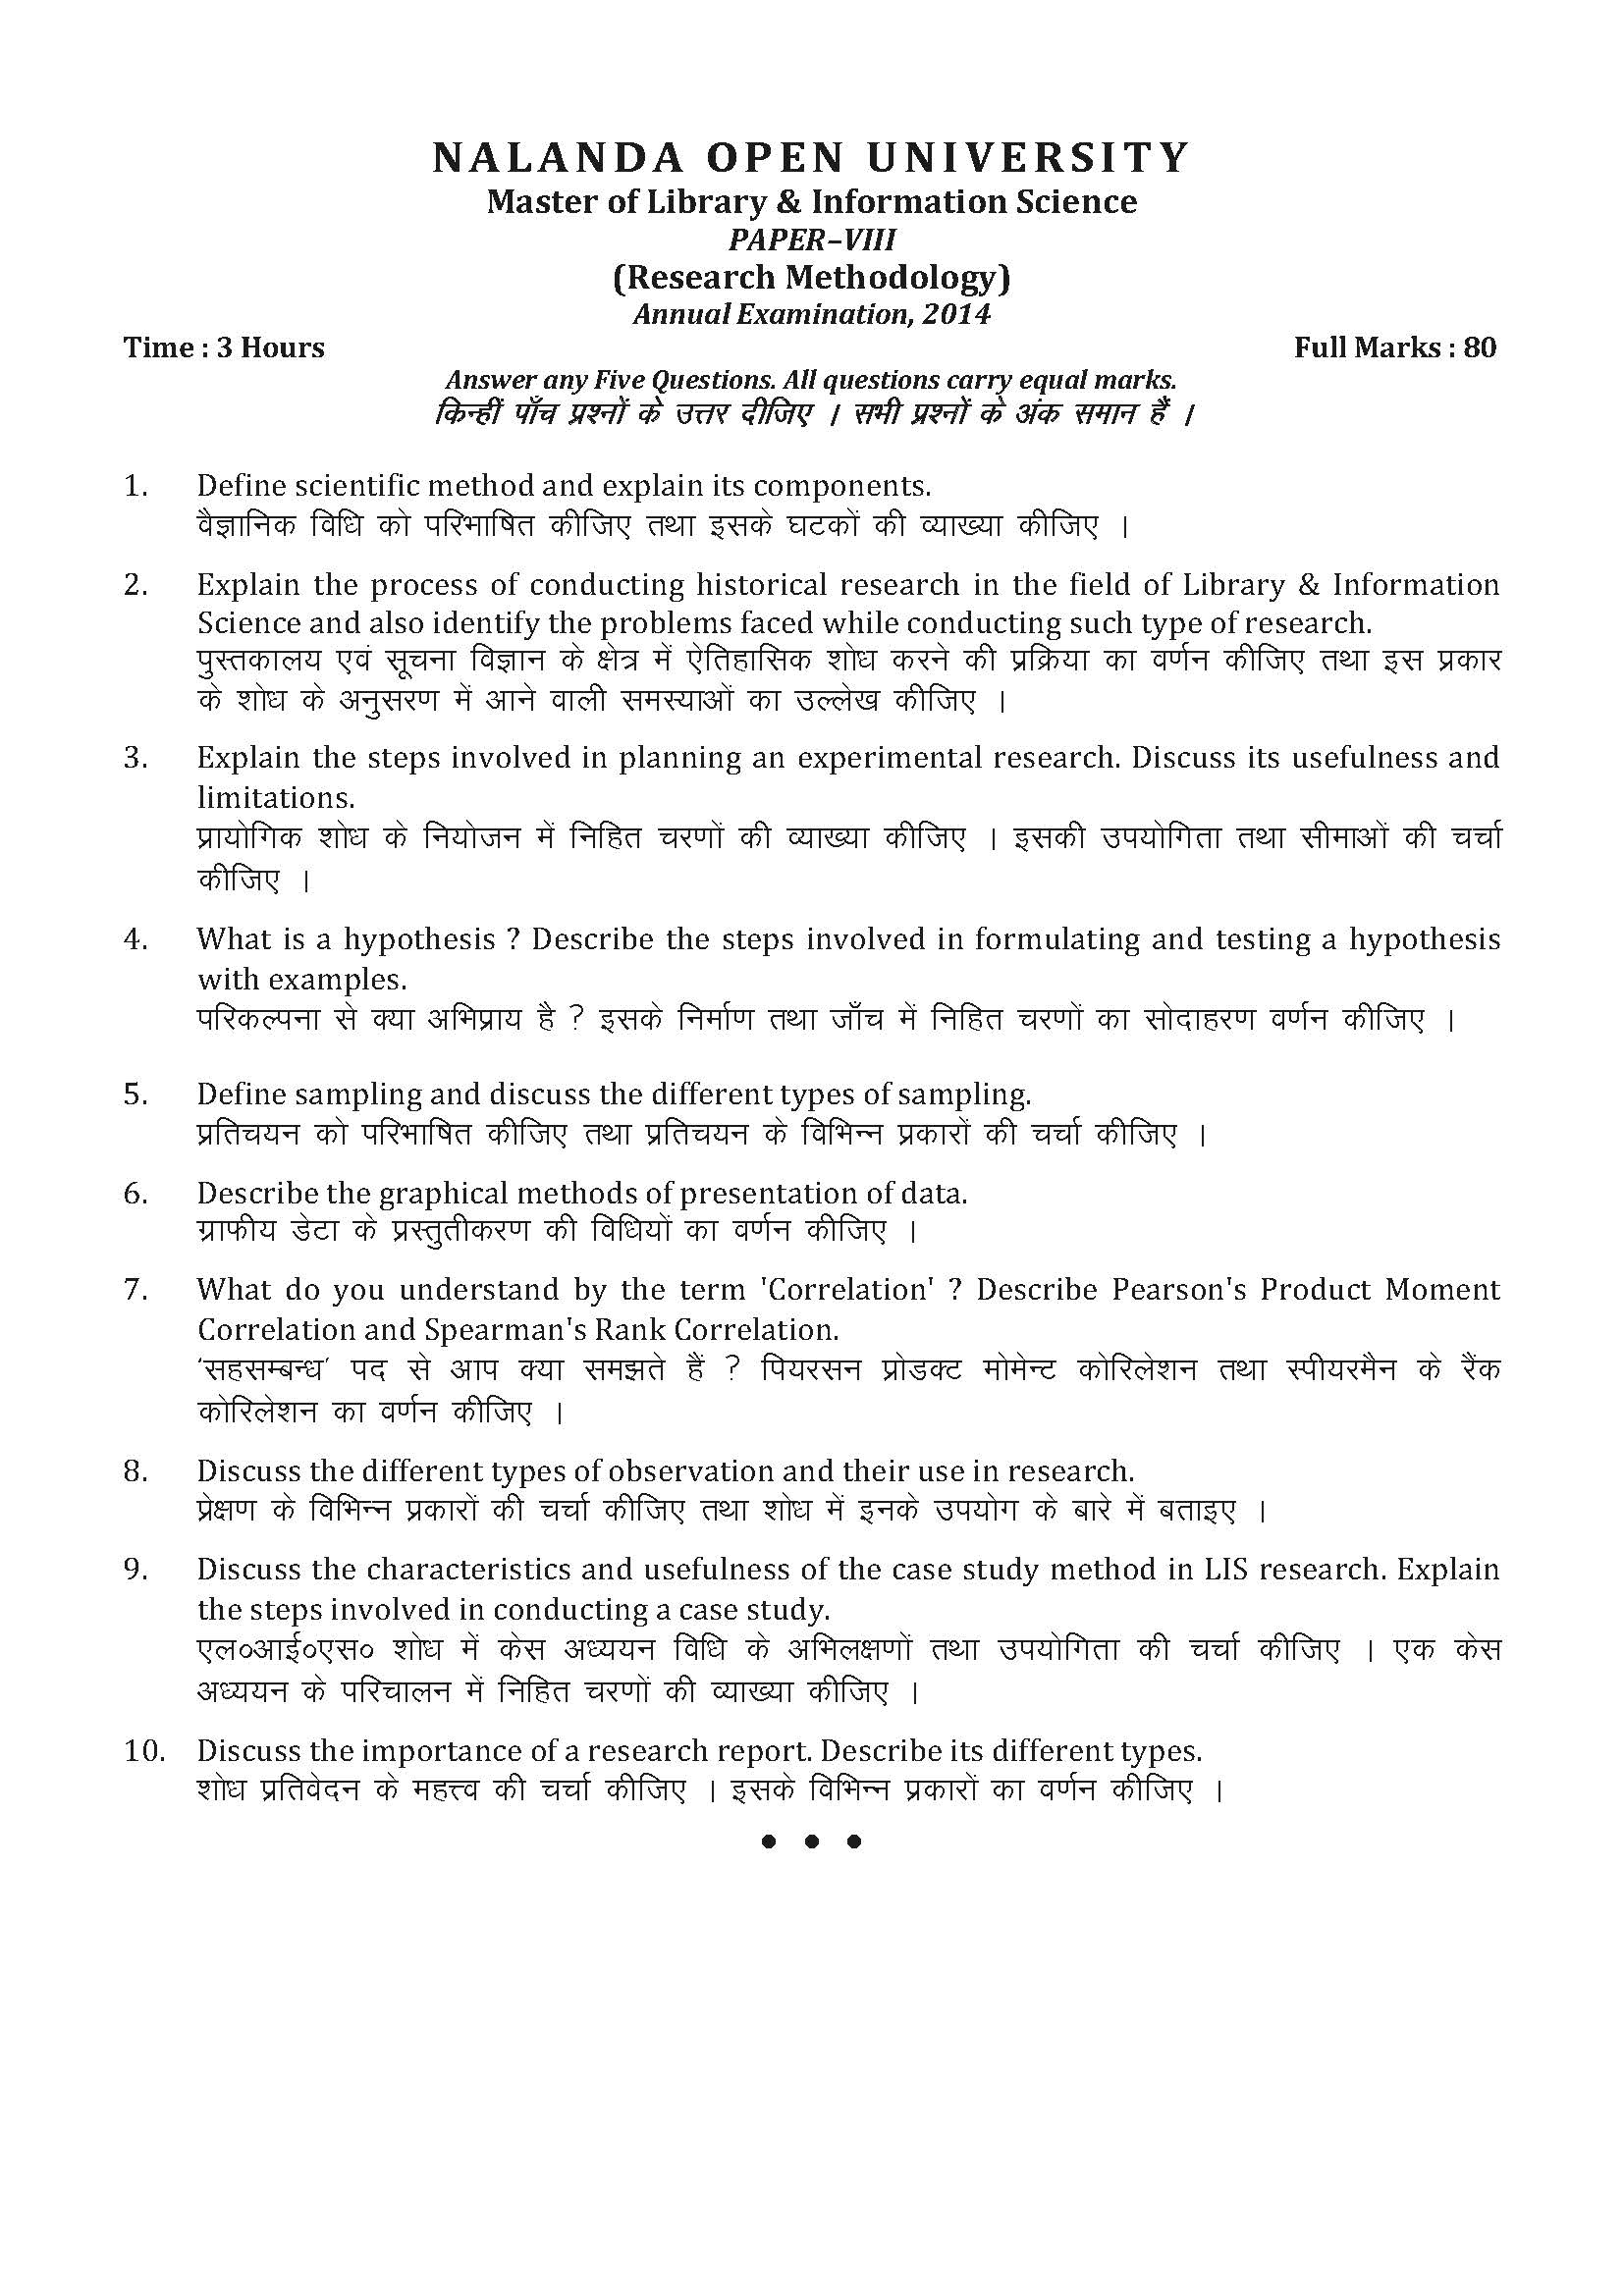 004 Master Of Library Information Science Research Methodology Paper Viii Papers Astounding Pdf Format In Hindi Example Mla Full